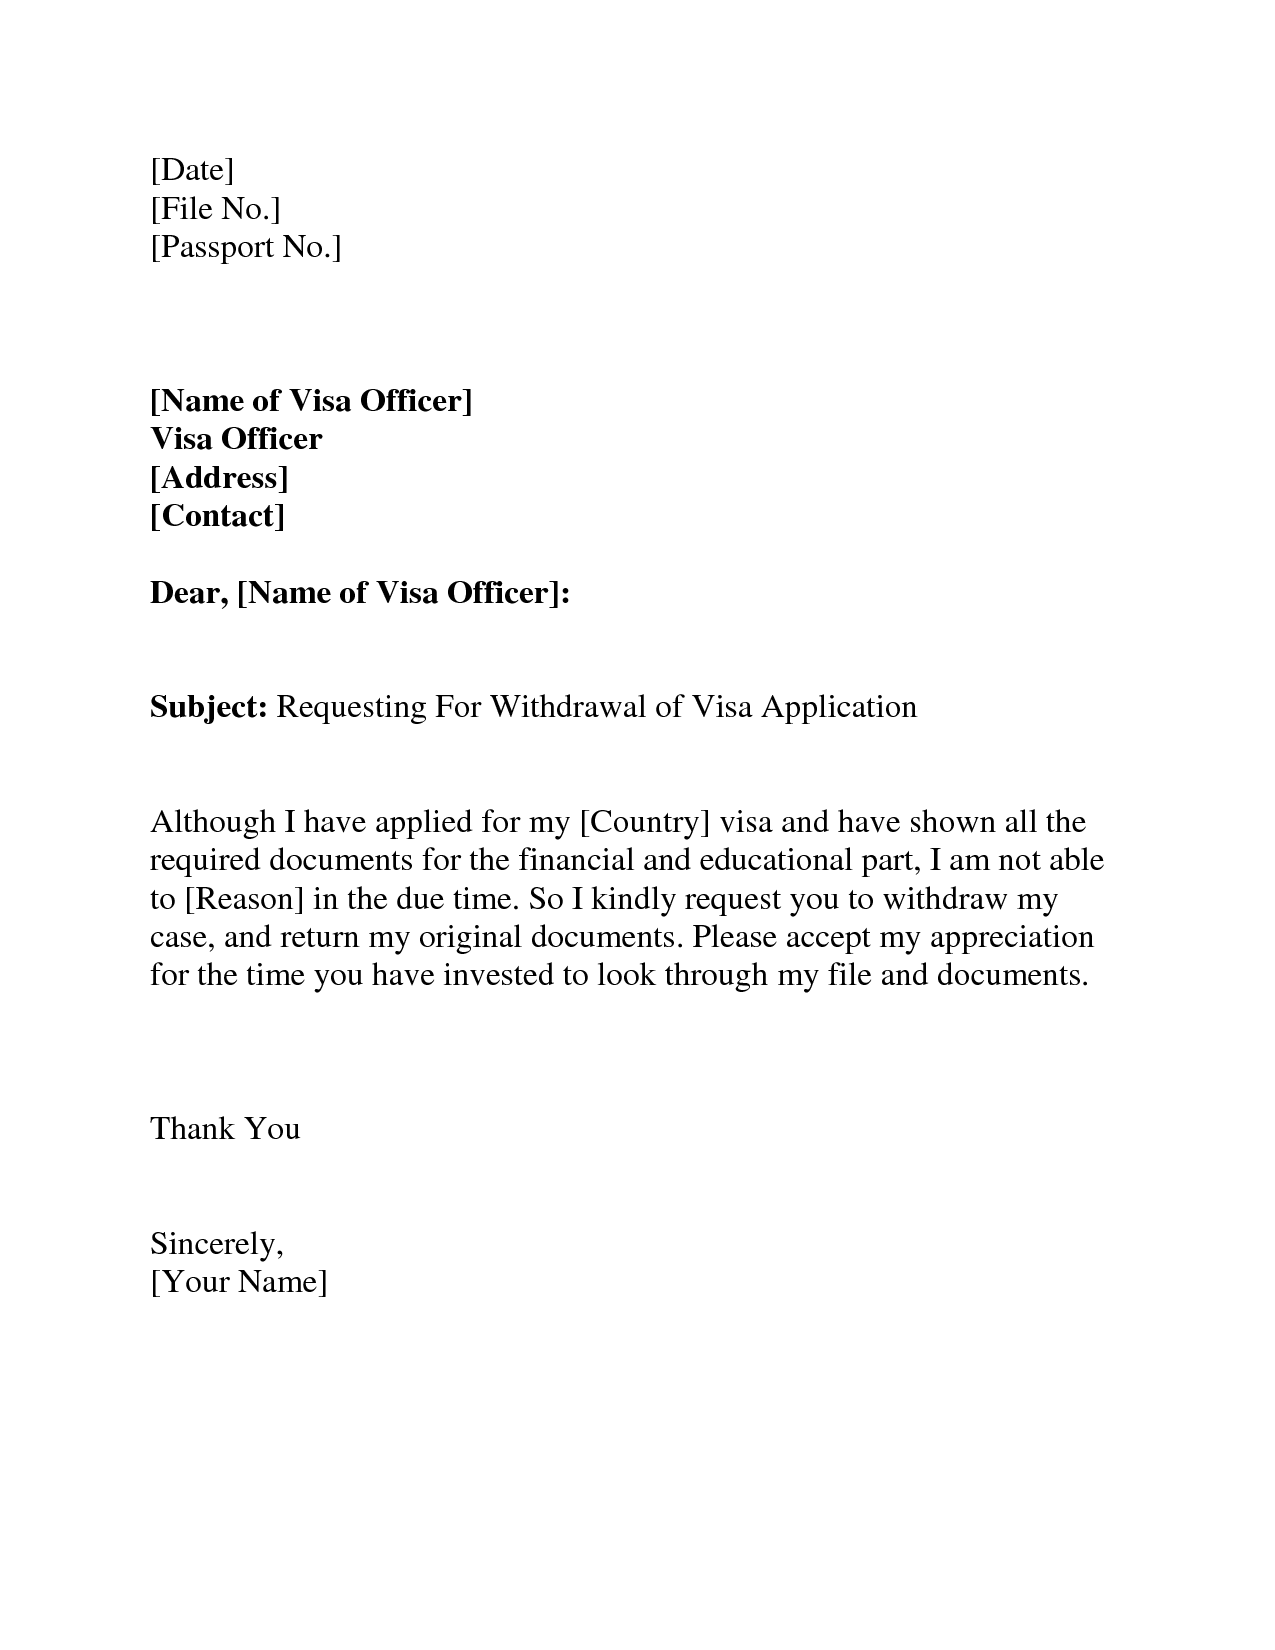 How to write a visa application cover letter